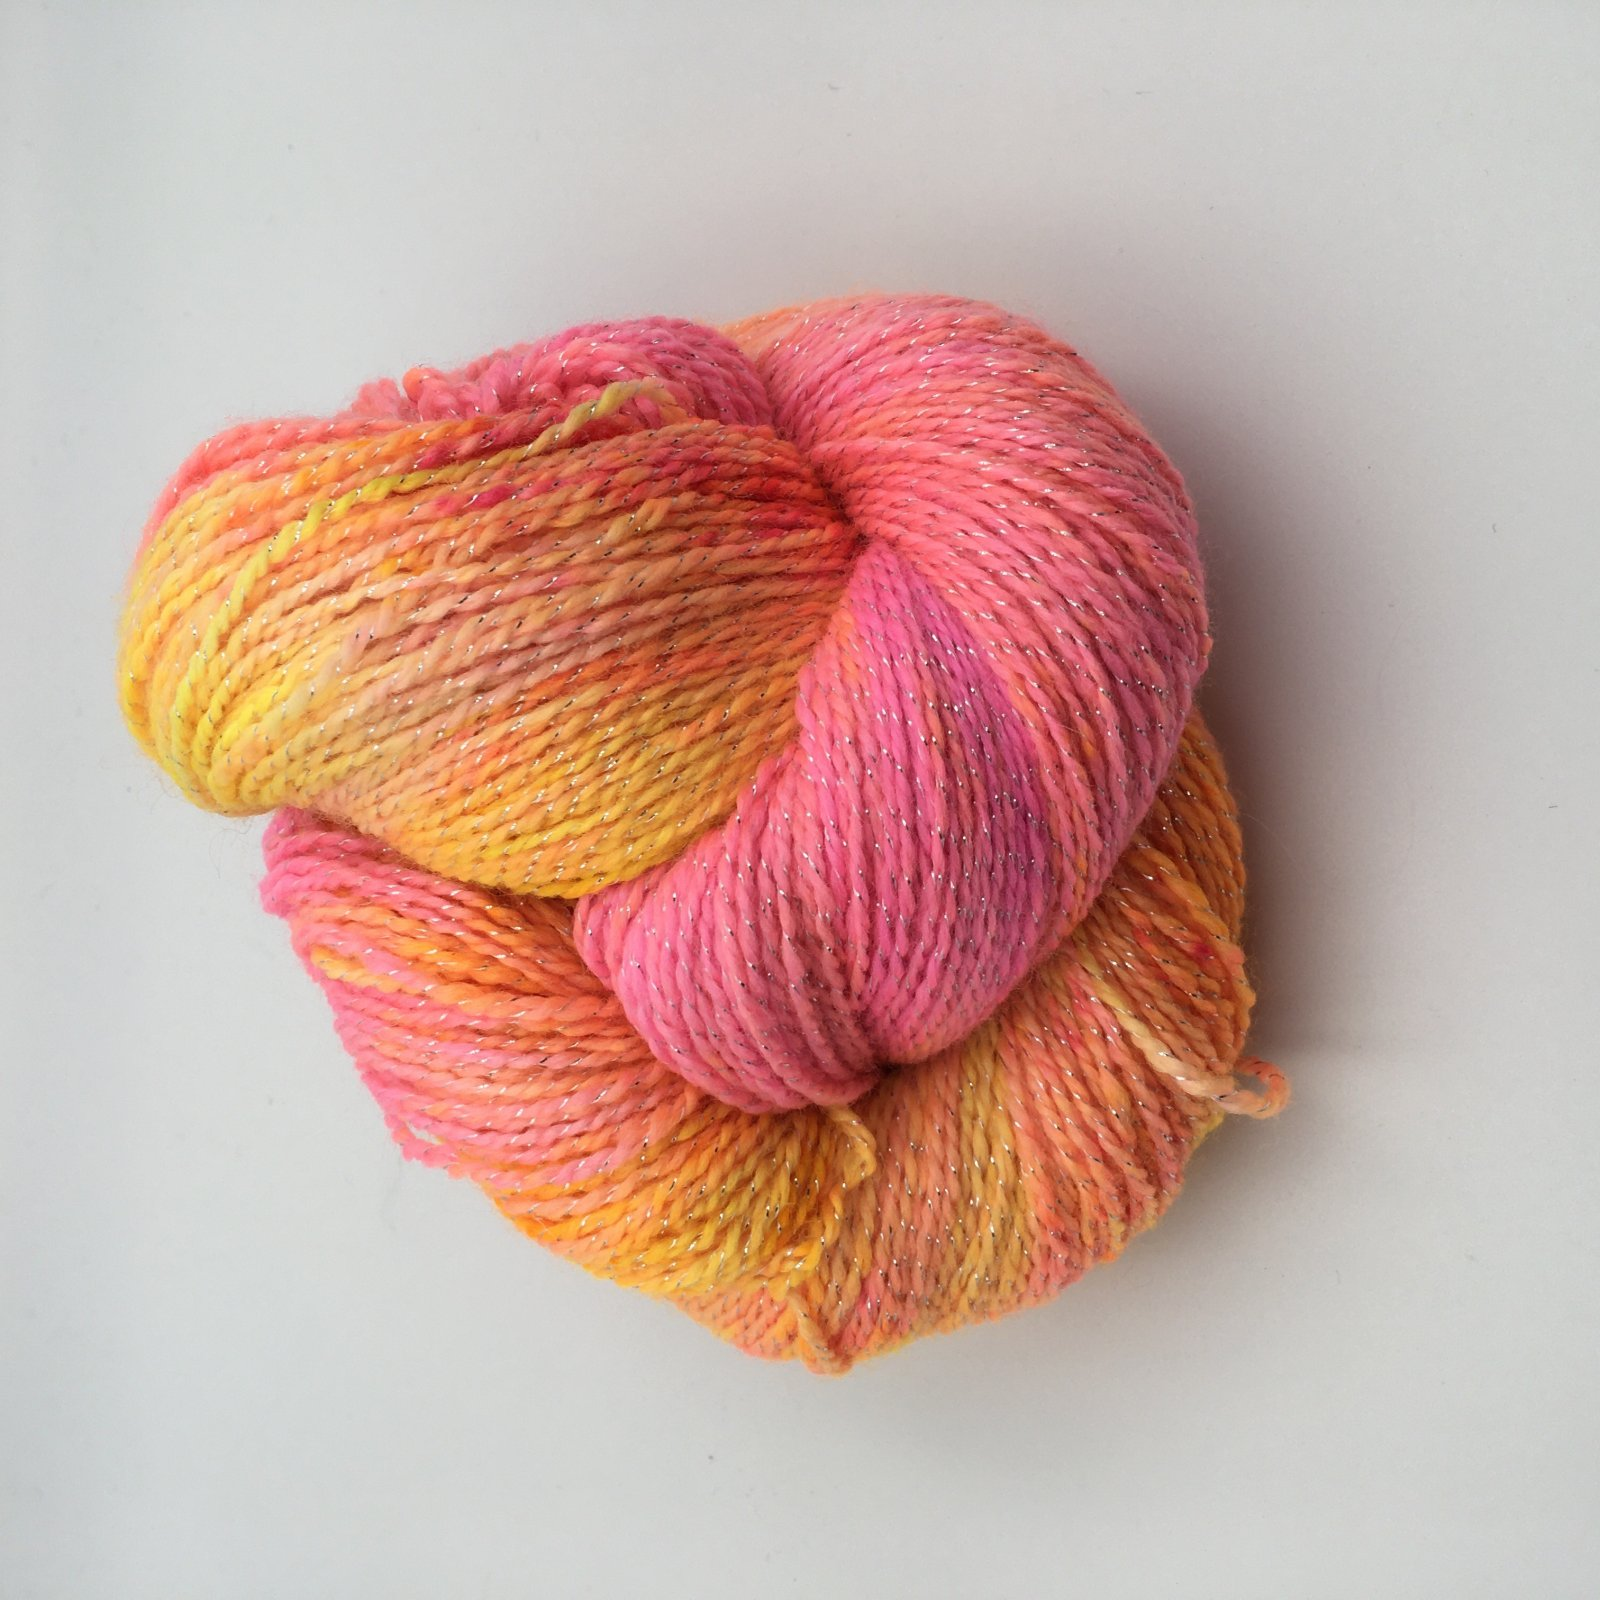 Trippin' With Dixi Fiber Co. Sparks - When It Comes Together STEVENBE EXCLUSIVE